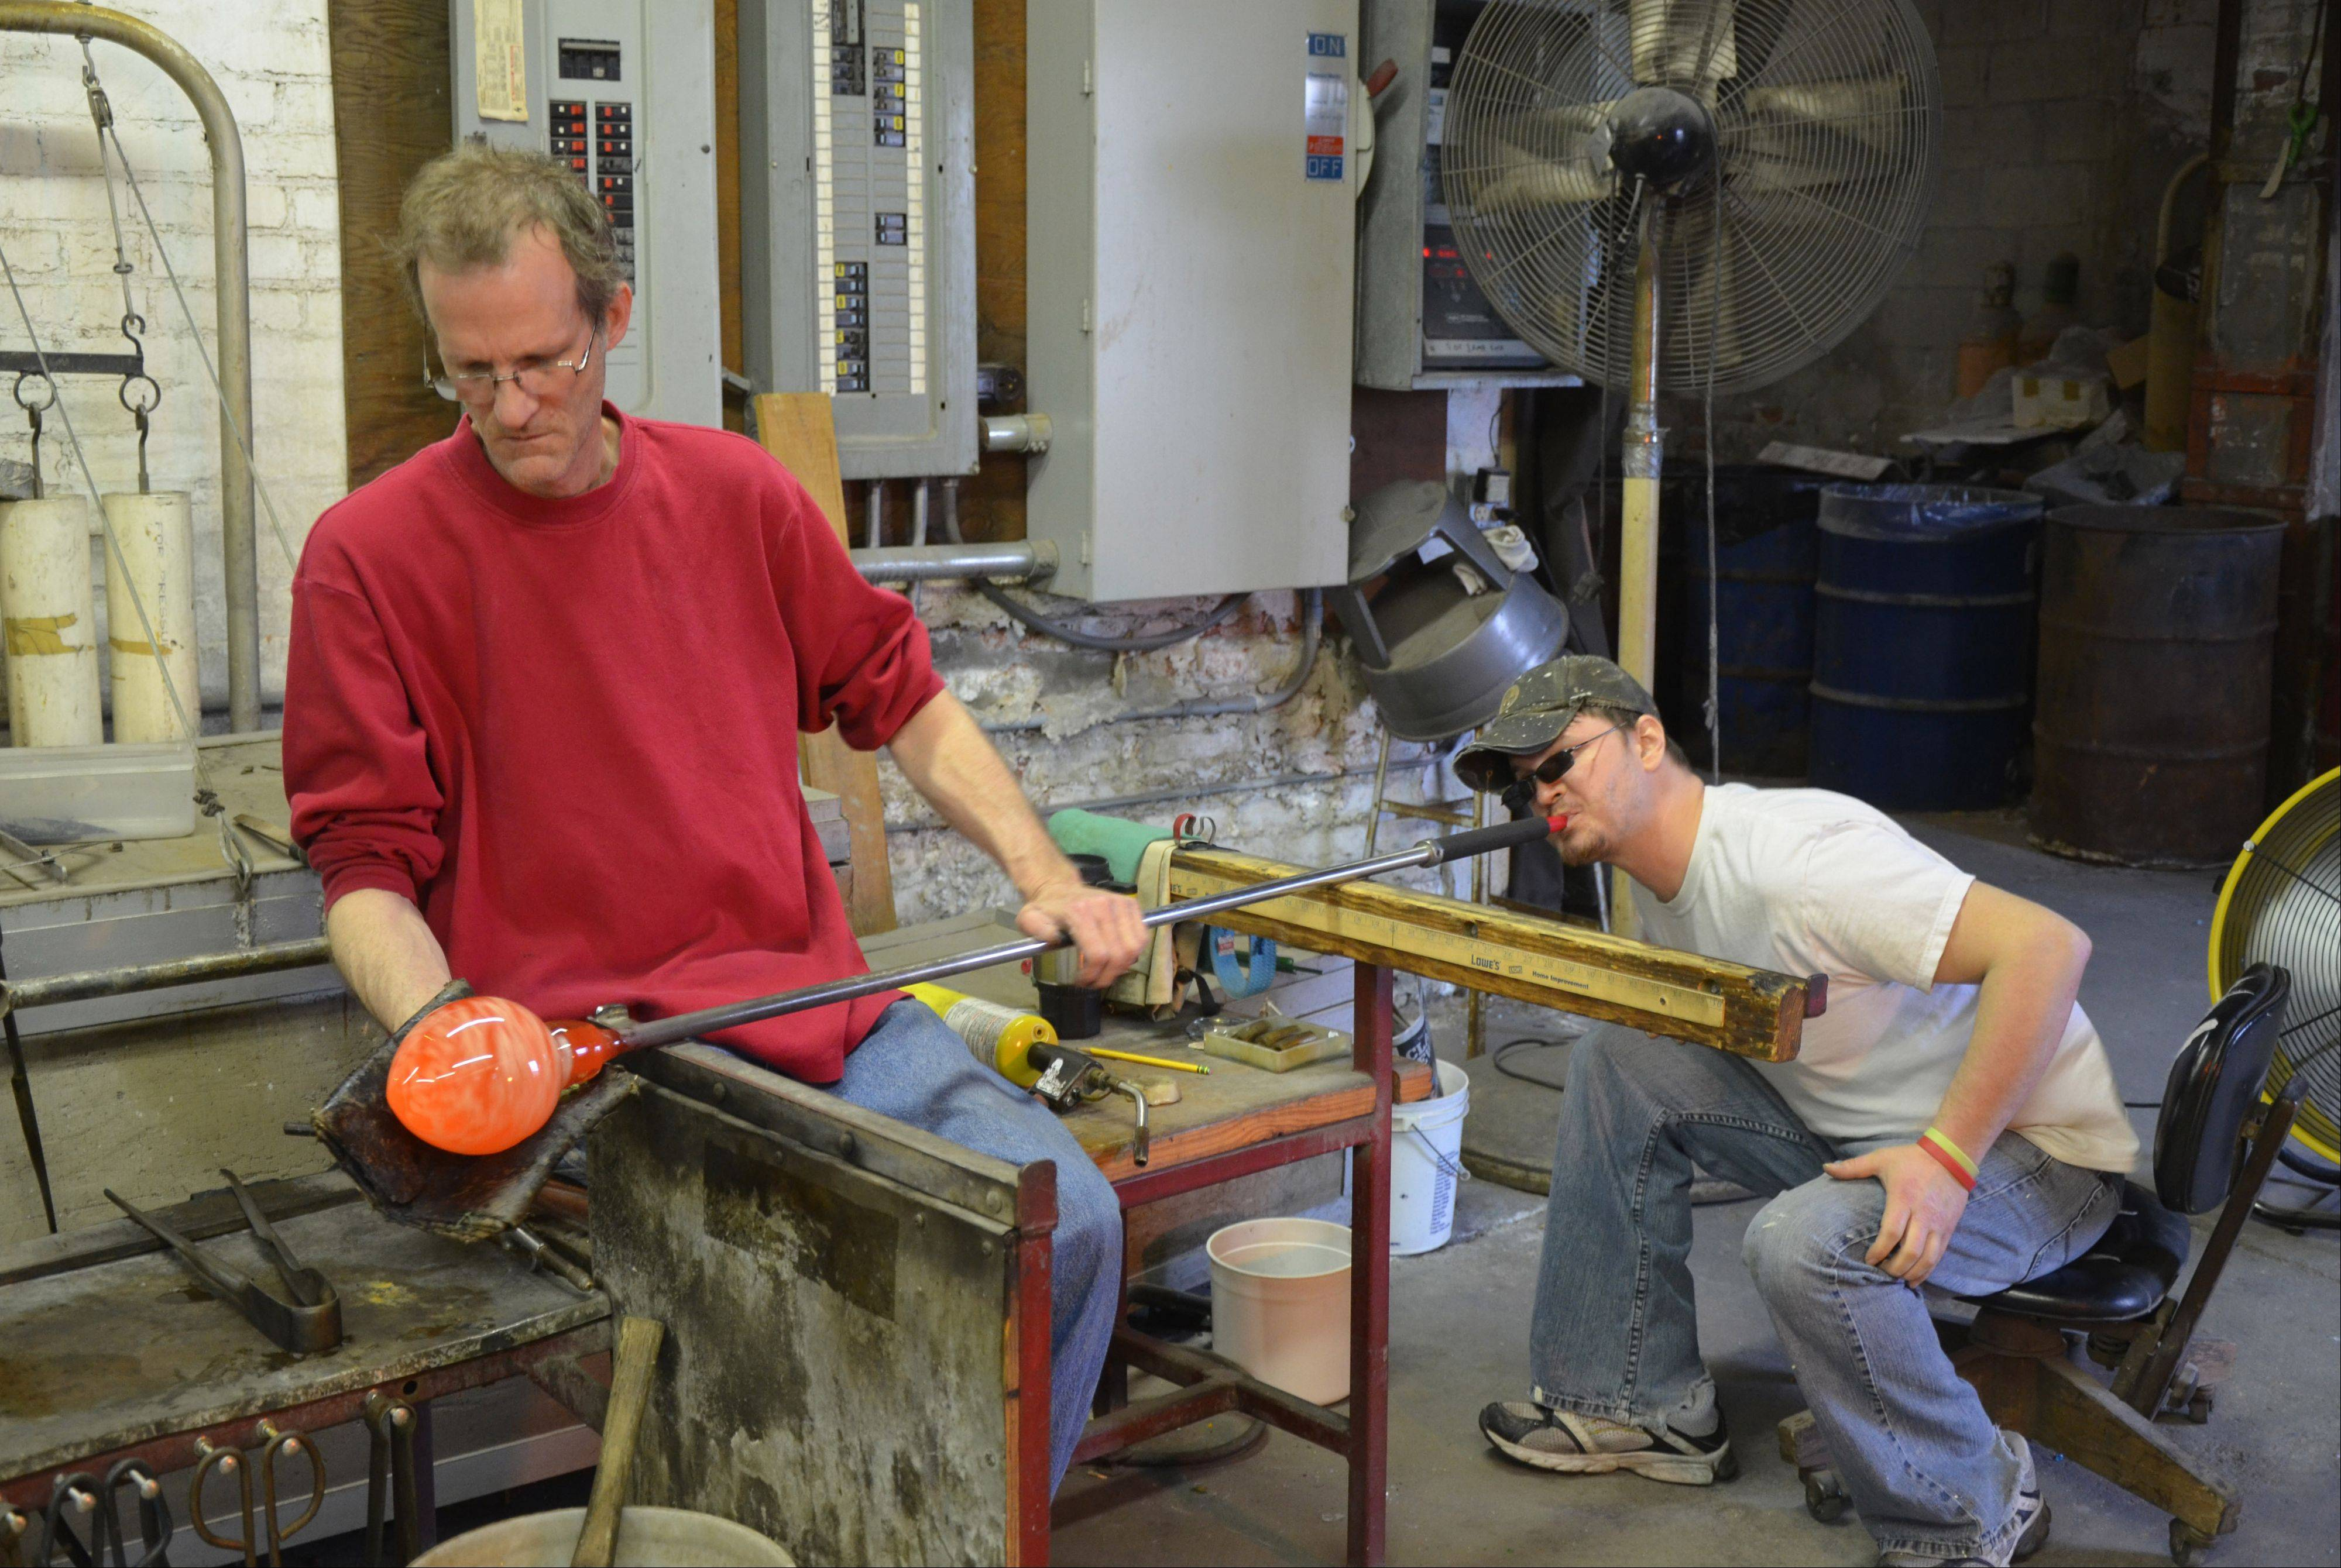 Workers at Kokomo Opalescent Glass create pendant lights by heating and shaping the molten glass mixture.